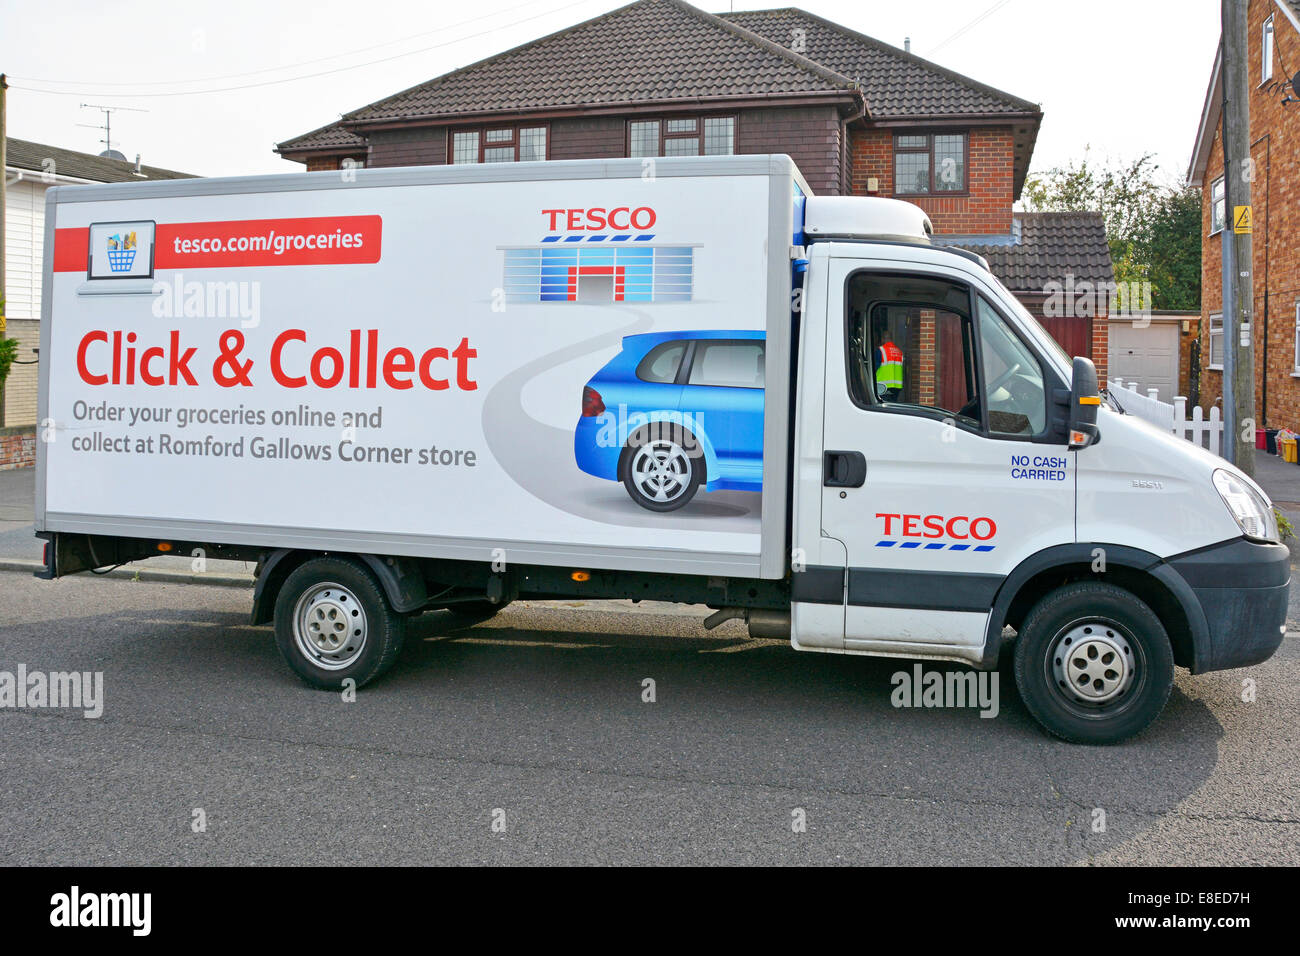 Tesco home delivery van with advert for Click and Collect service from local store - Stock Image